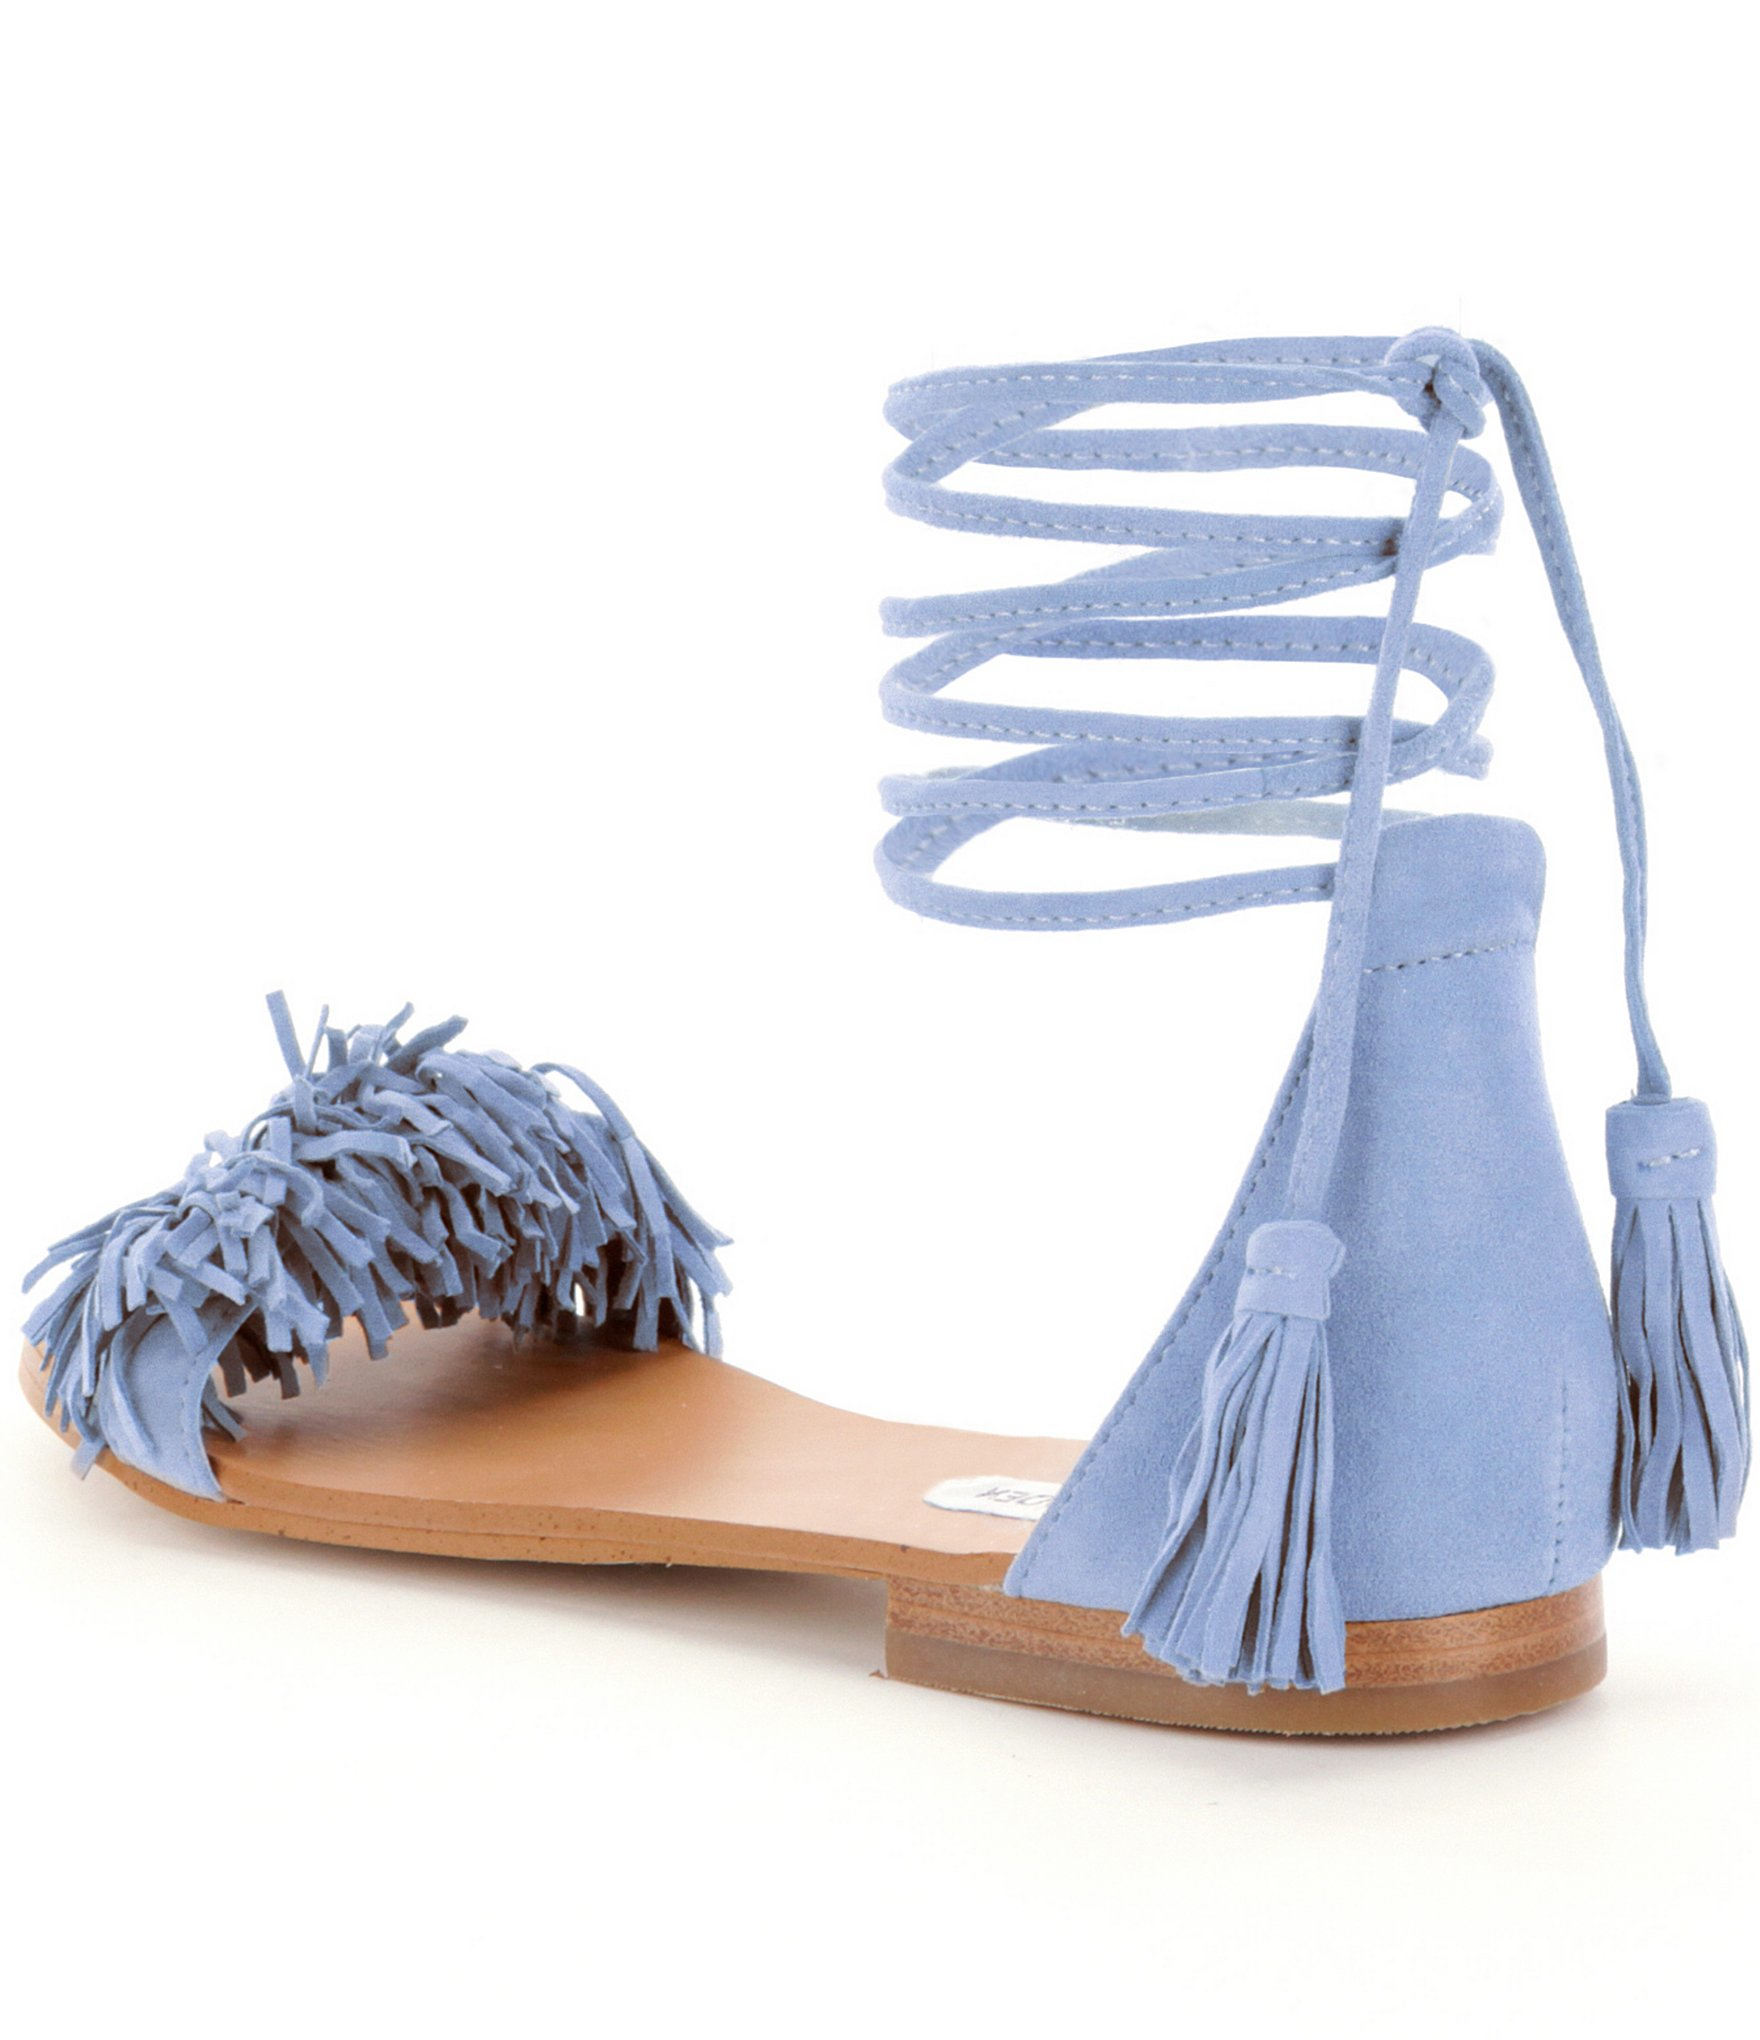 Lyst Steve Madden Sweetyy Lace Up Fringe Sandals In Blue